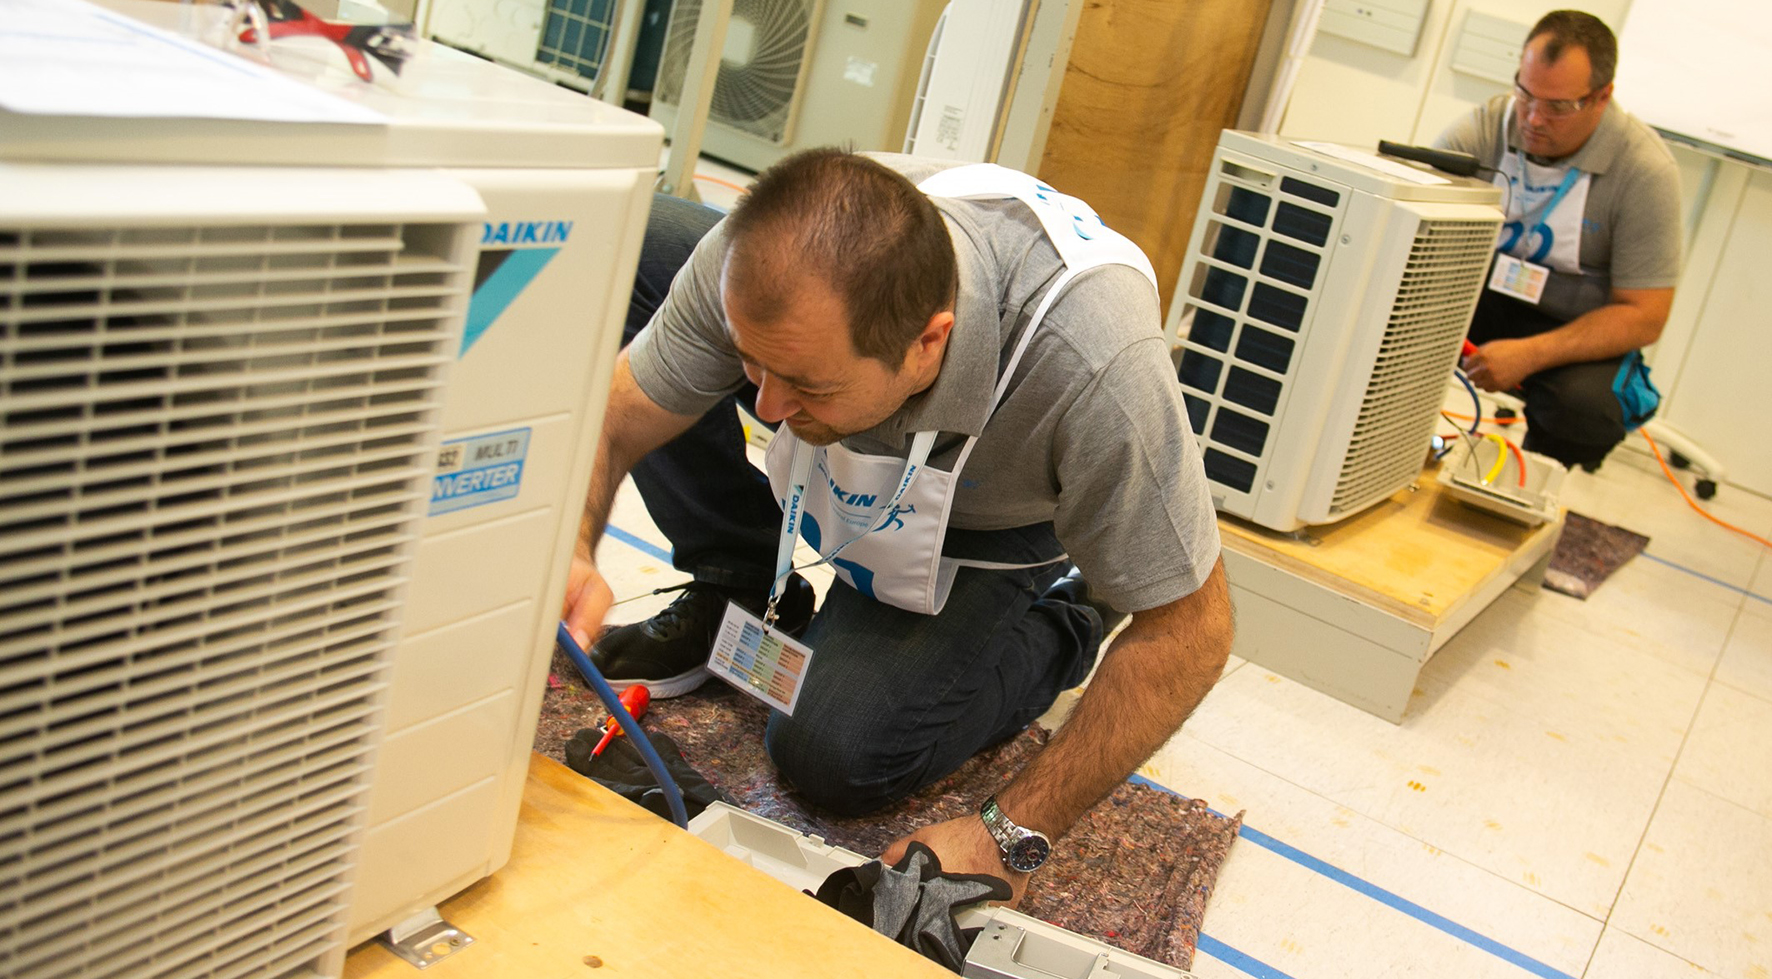 Daikin Service Games Central Europe - Troubleshooting Competition